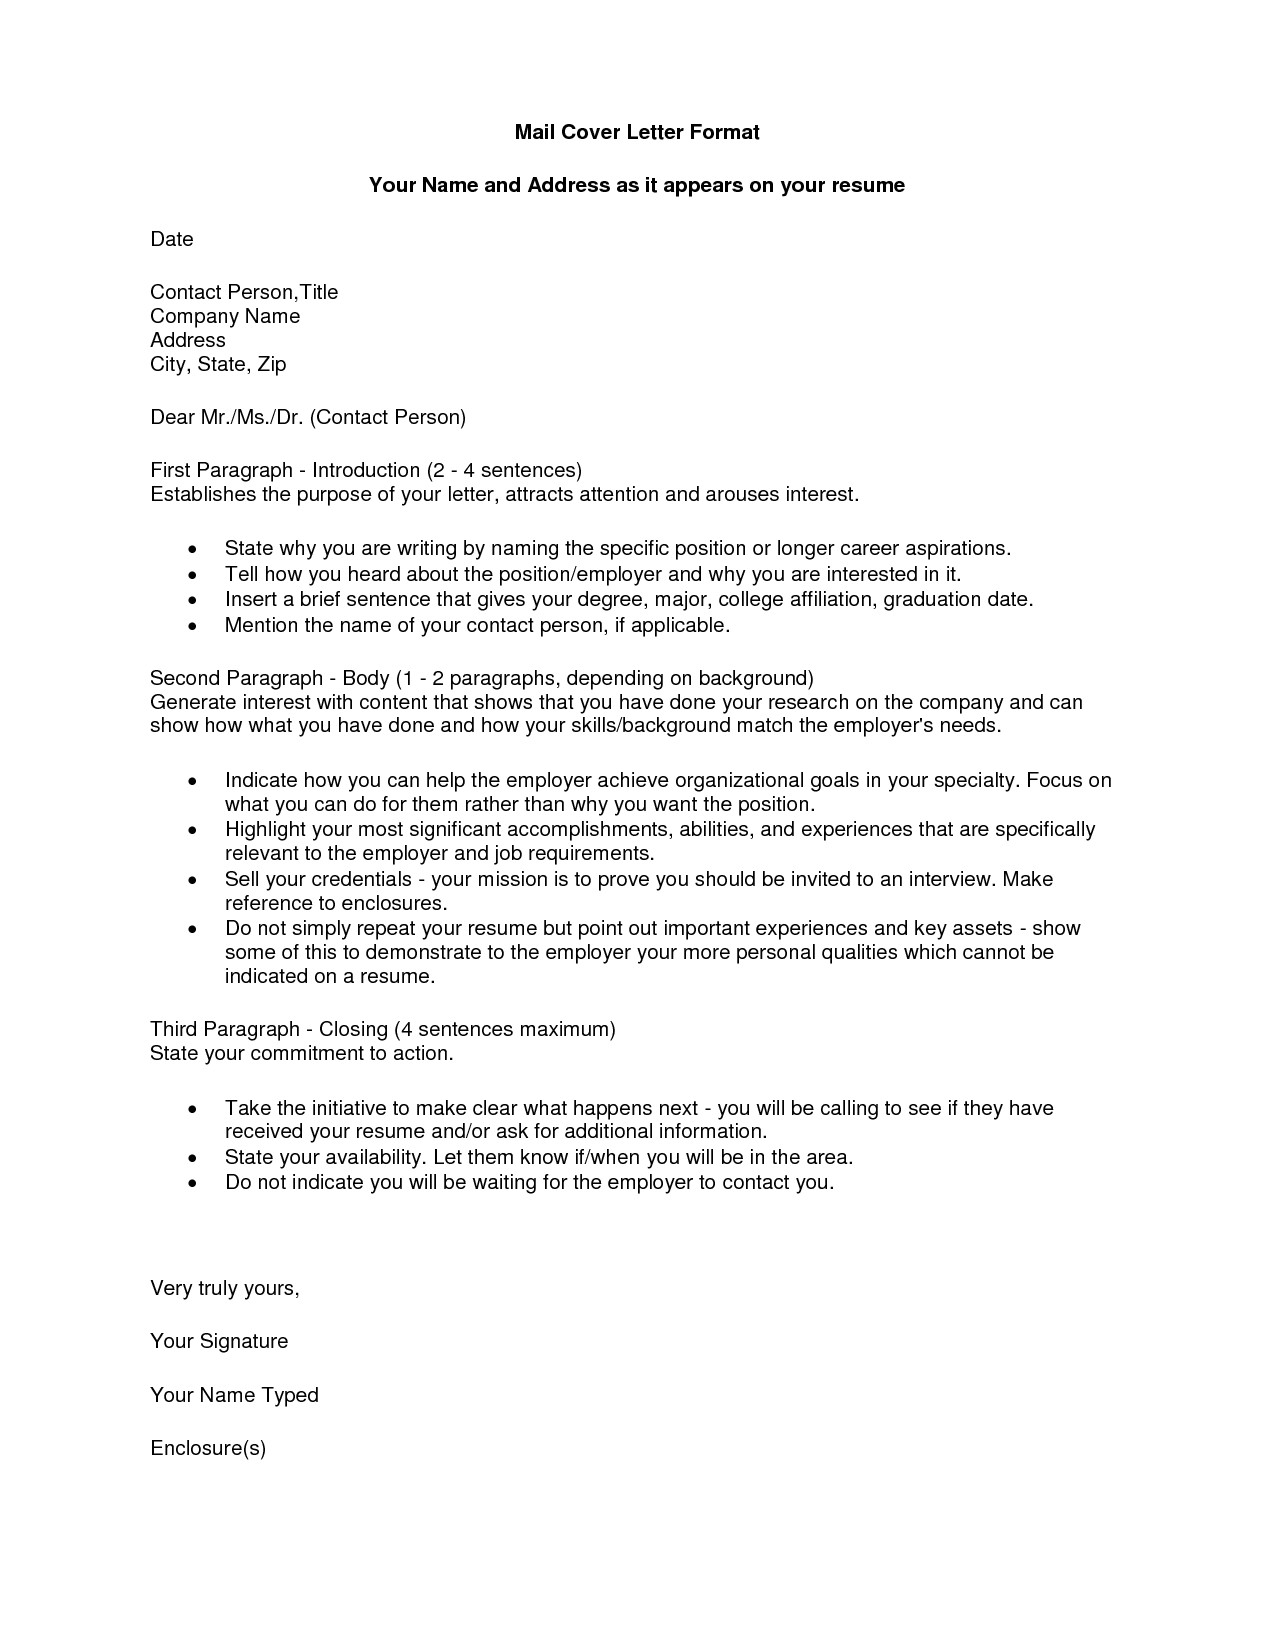 What is An Enclosure On A Cover Letter Academic Proofreading Encl Cover Letter